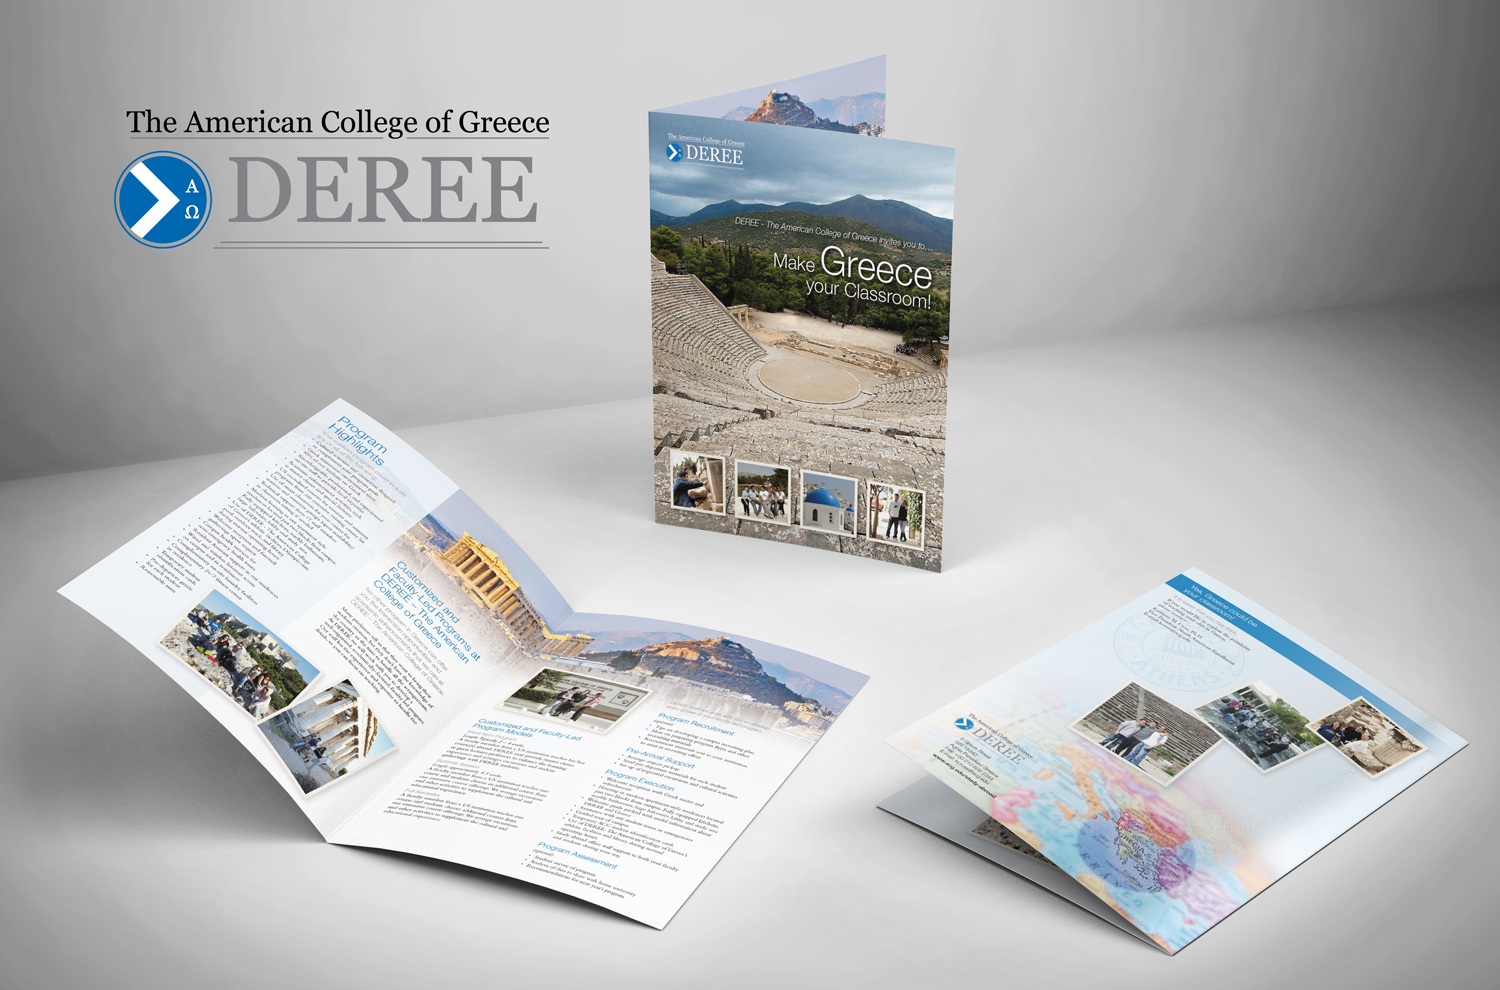 MAKE GREECE YOUR CLASSROOM BROCHURE FOR THE AMERICAN COLLEGE OF GREECE